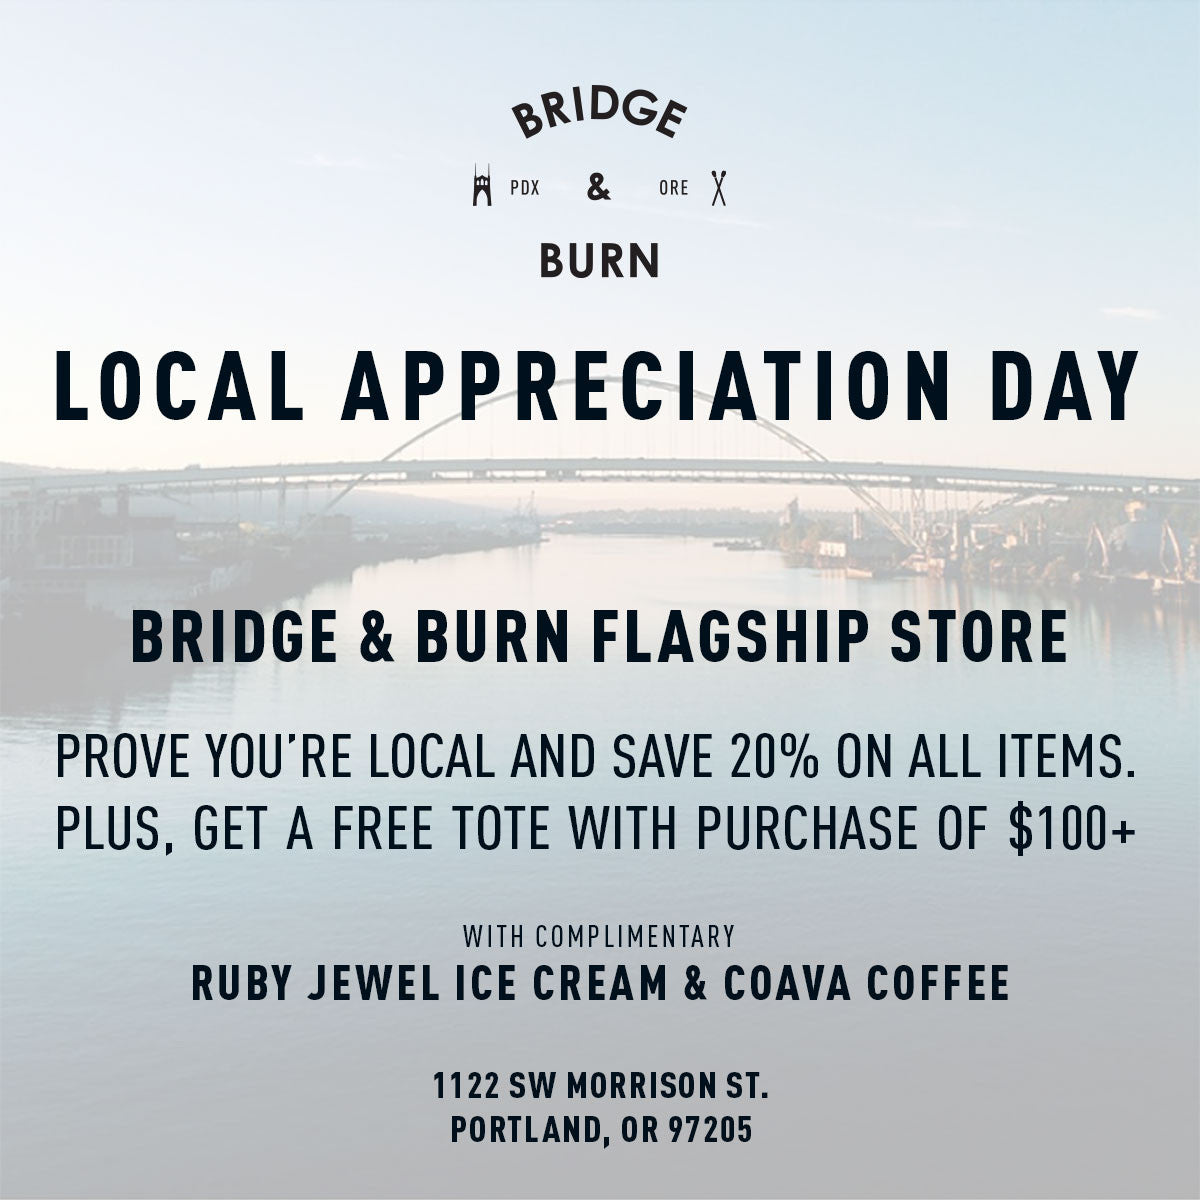 Portlanders Only! Bridge & Burn is throwing a Local Appreciation Day May 20th